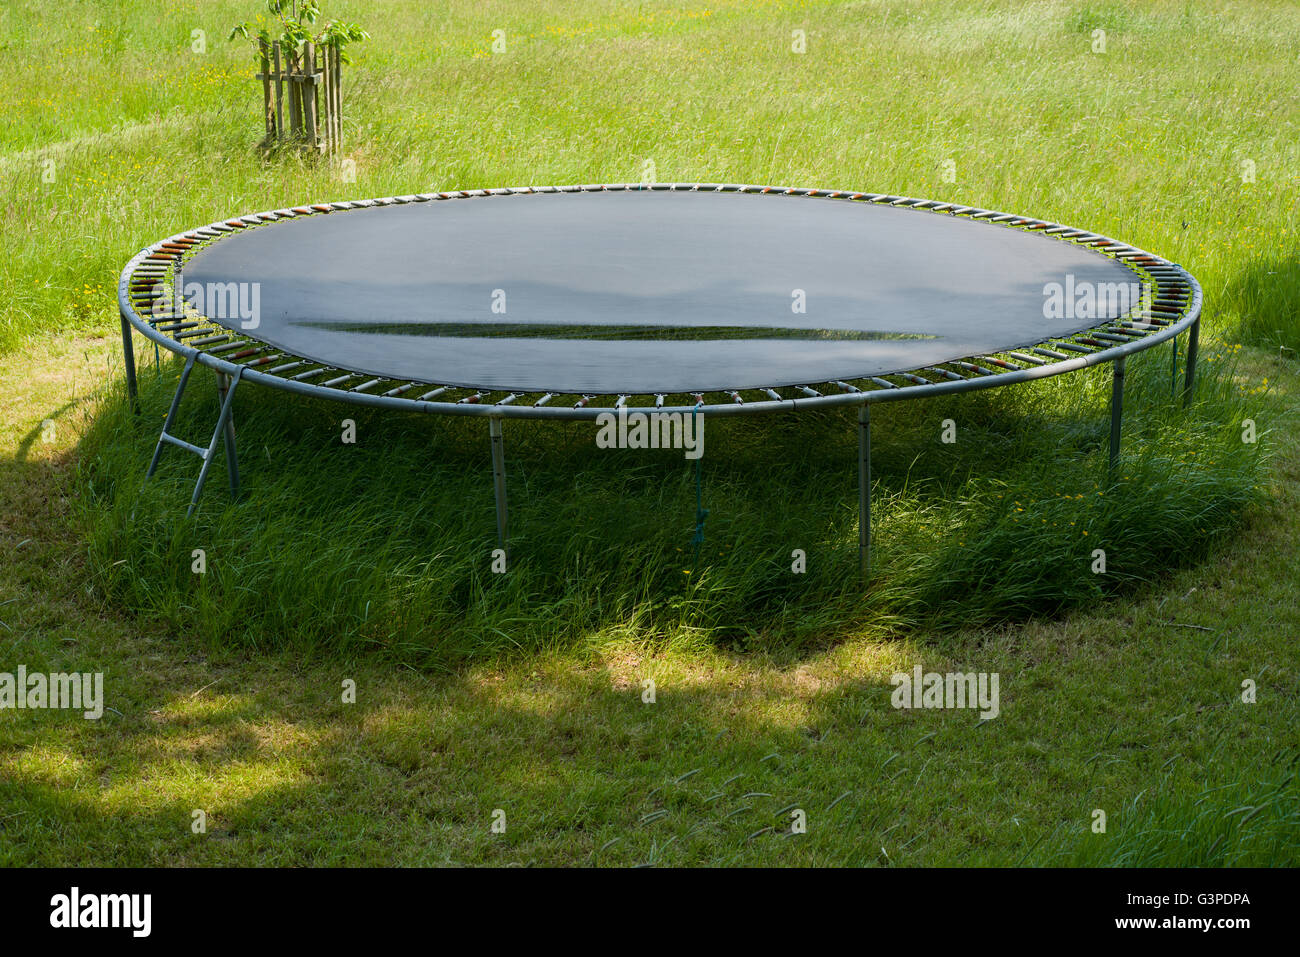 Torn trampoline mat. Polypropylene bed for a trampoline that has split with age and usage. - Stock Image